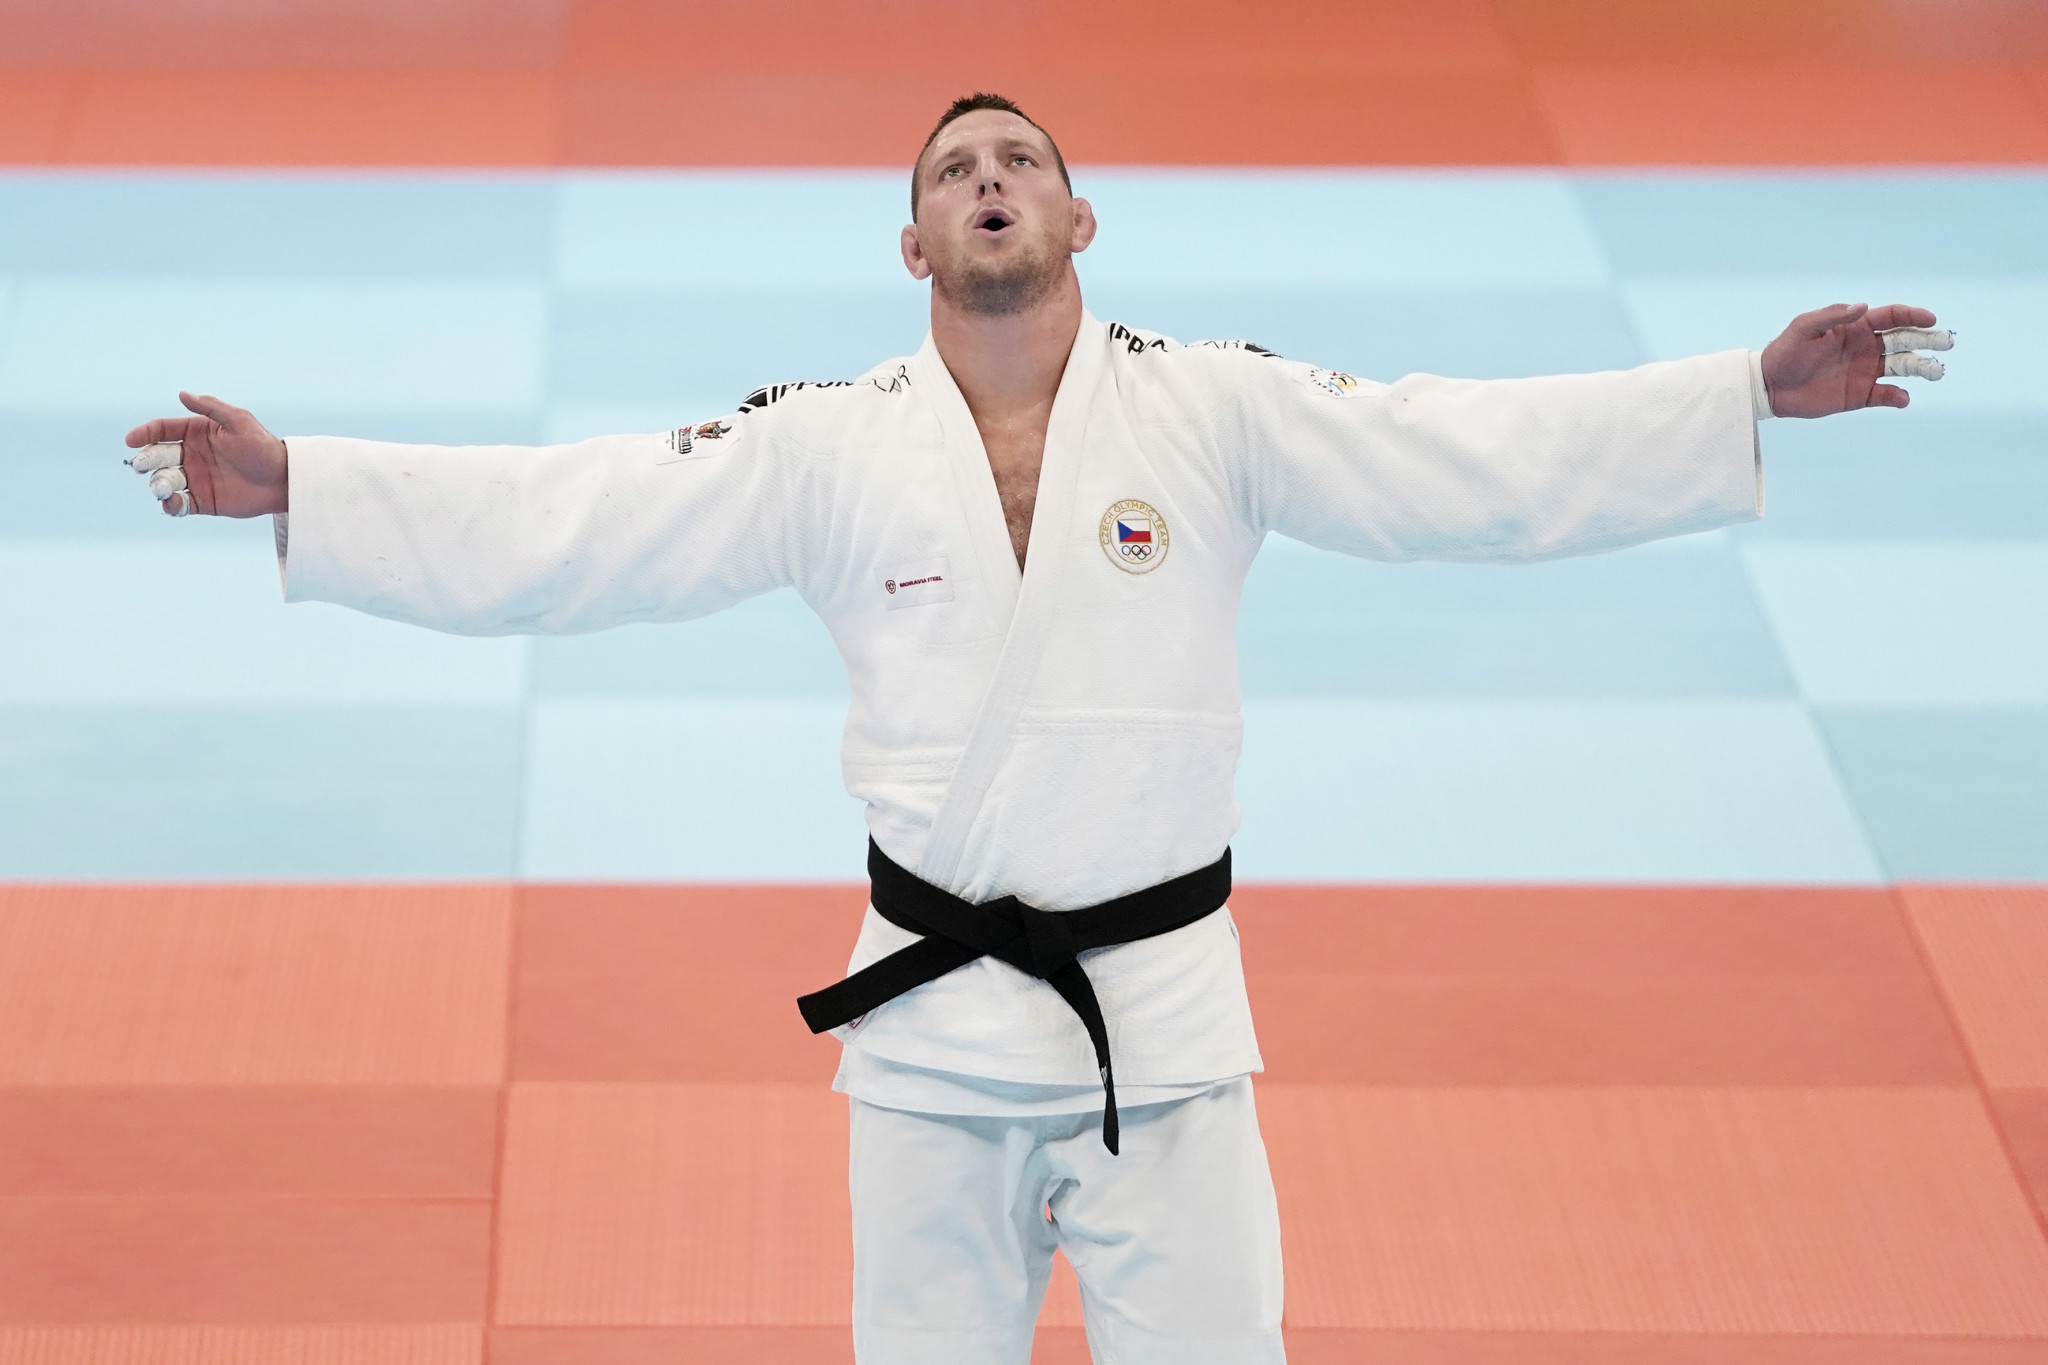 Krpálek becomes two-weight IJF world champion as Sone wins home gold